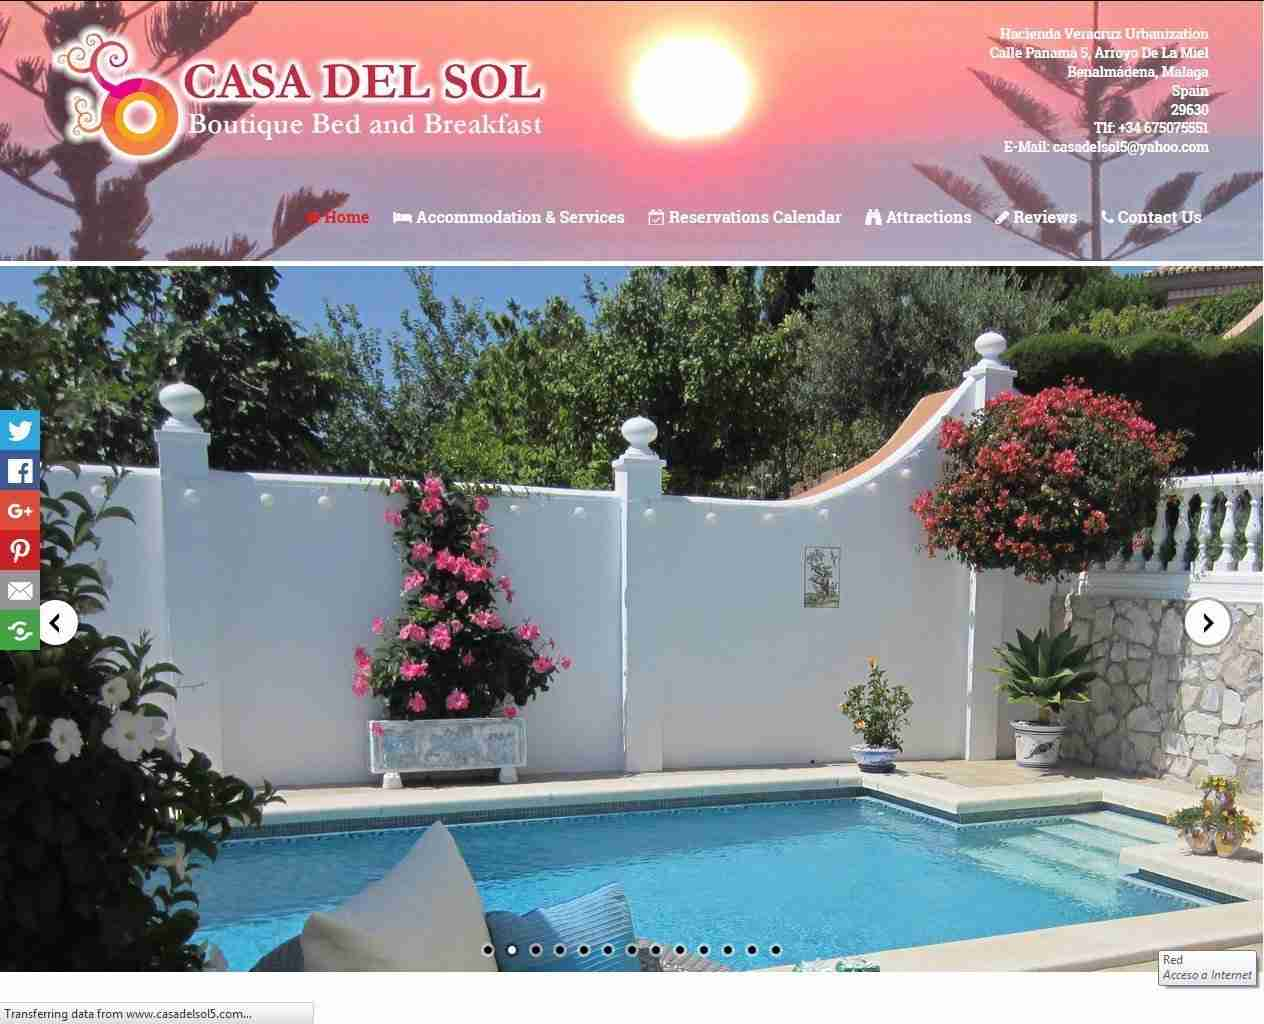 Spain Web Design and more by Gandy-Draper | ... extremely patient with my wants and needs for the perfect website